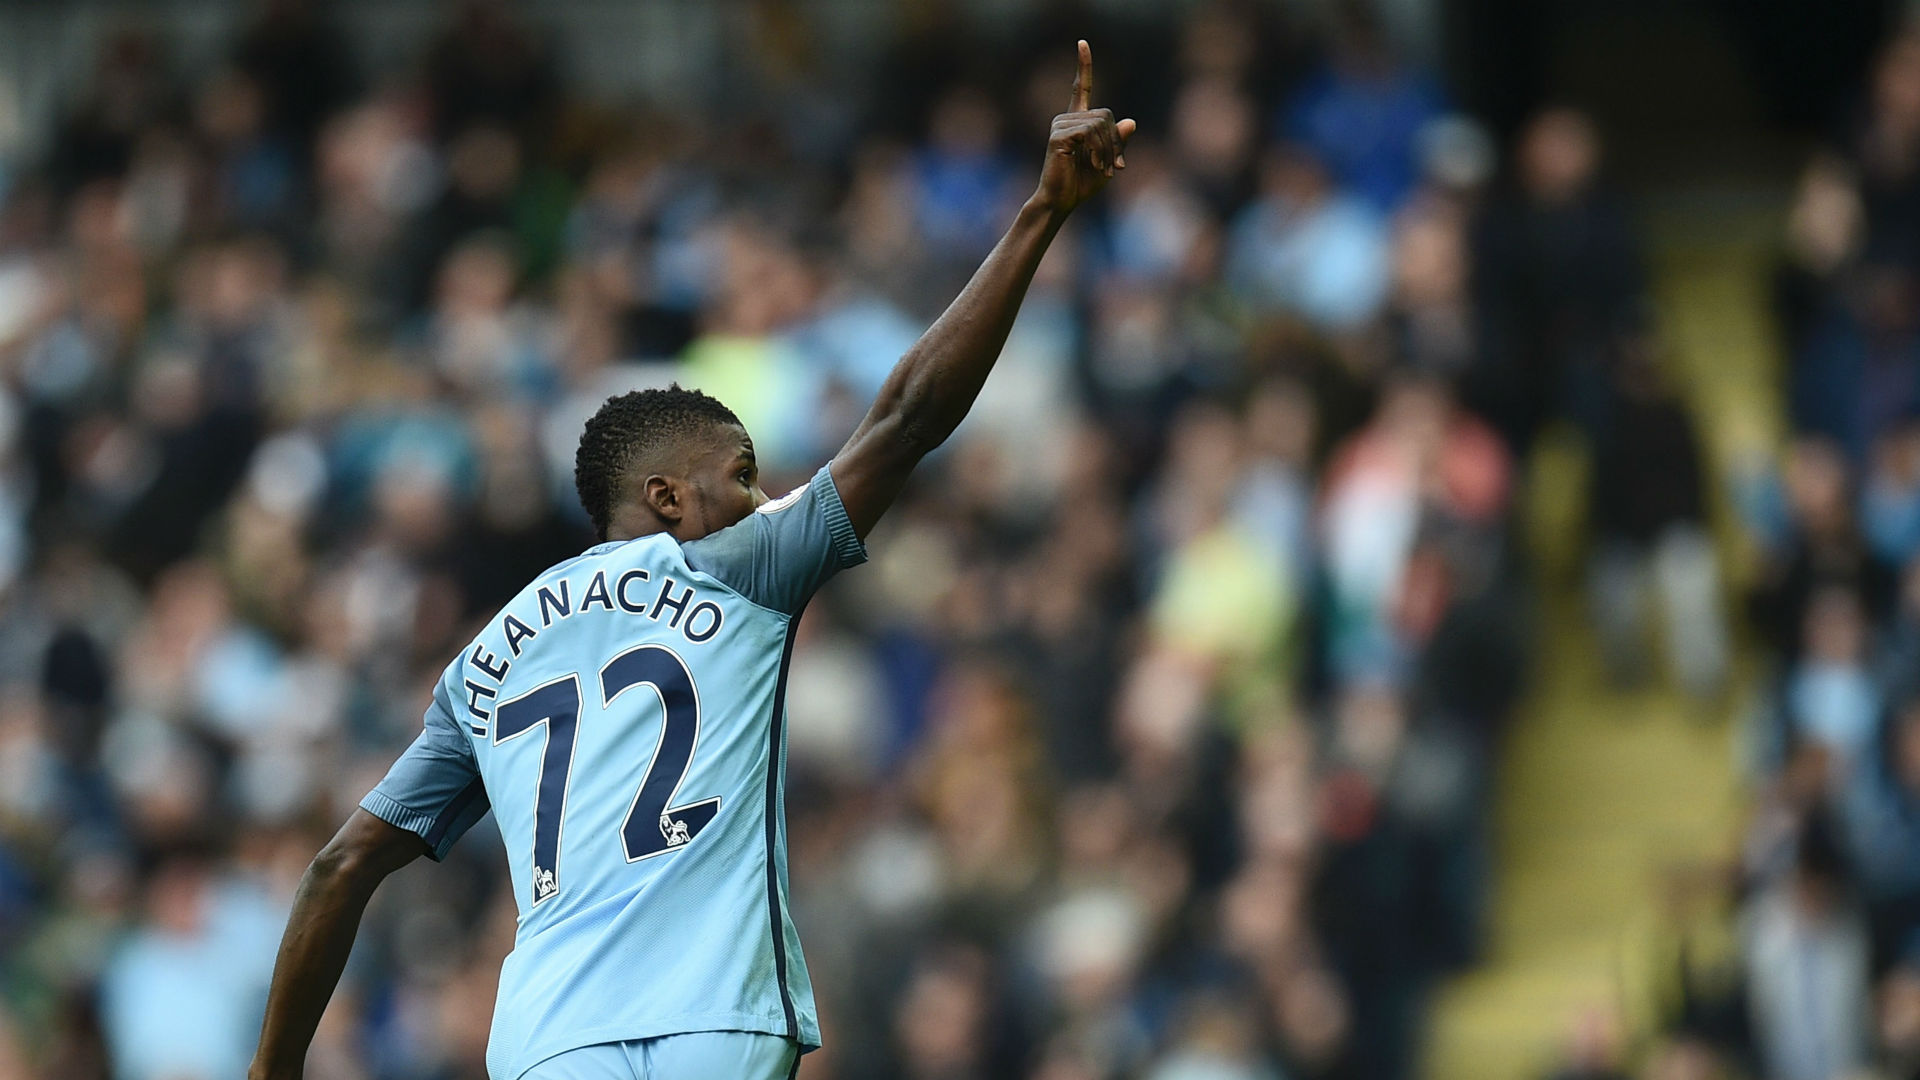 What Next For Iheanacho As Man City Future Is Shrouded In Doubt?